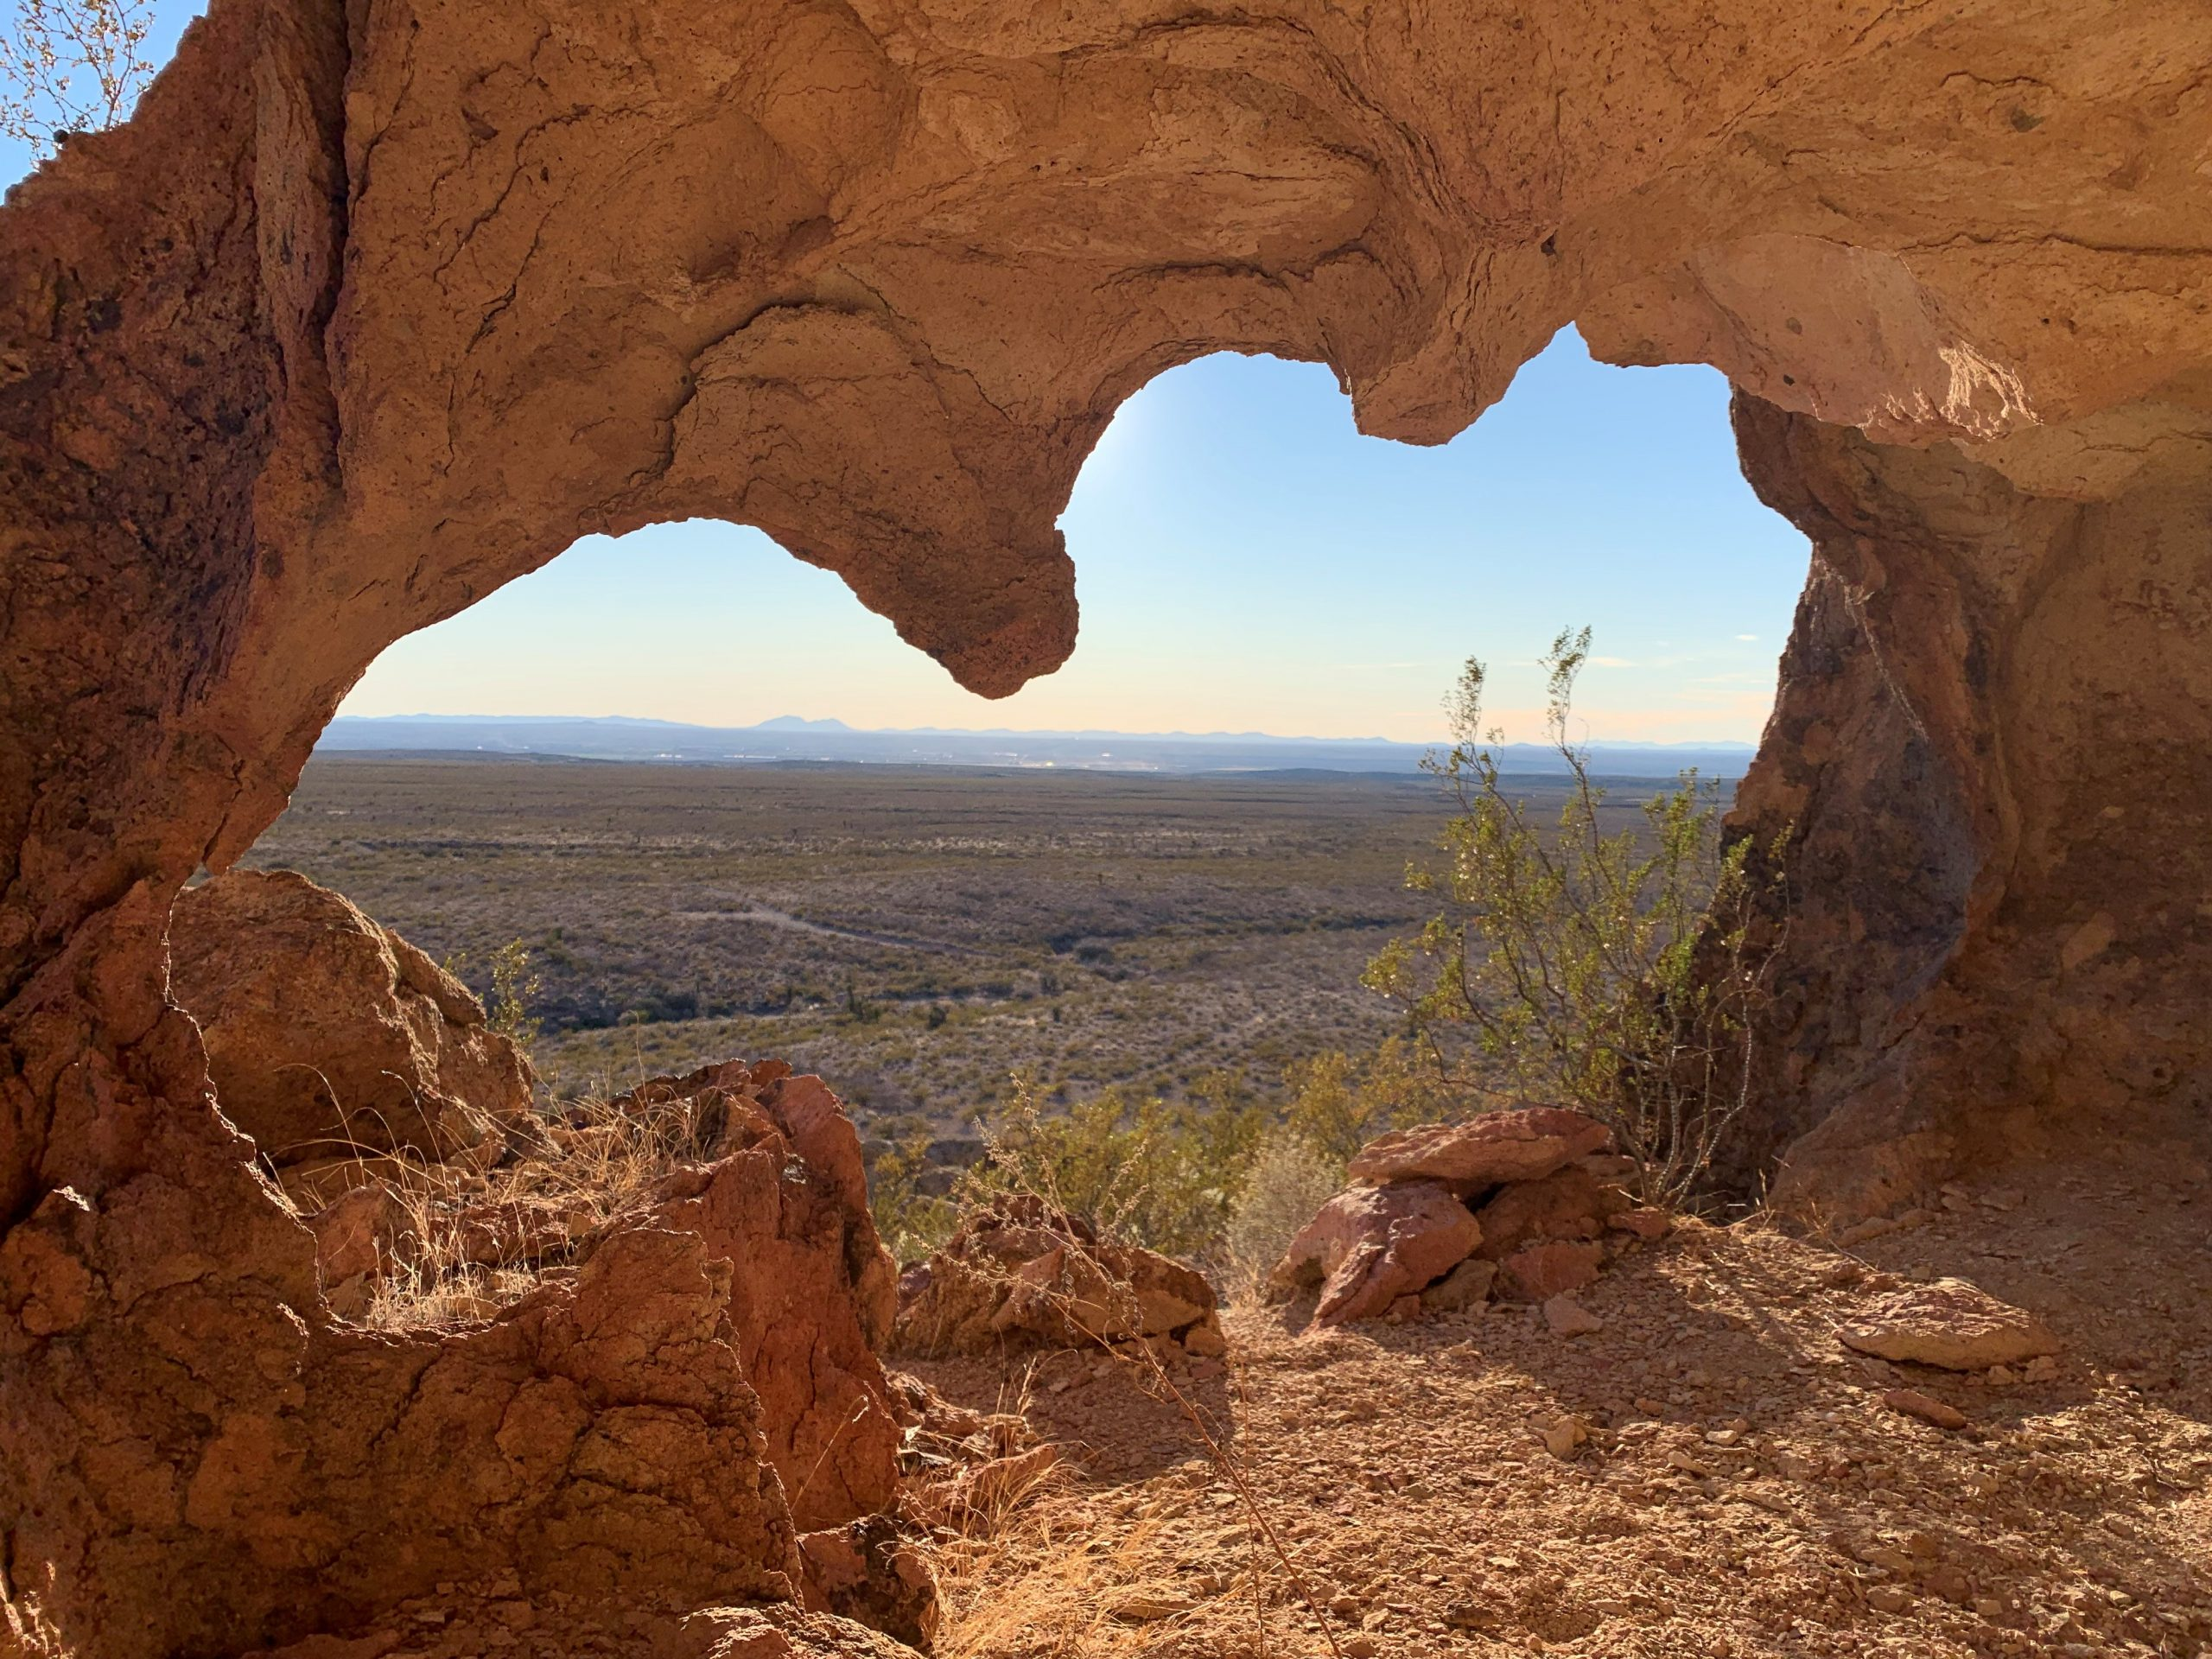 Get back out there: New Mexico trails to hike as COVID-19 restrictions lifted